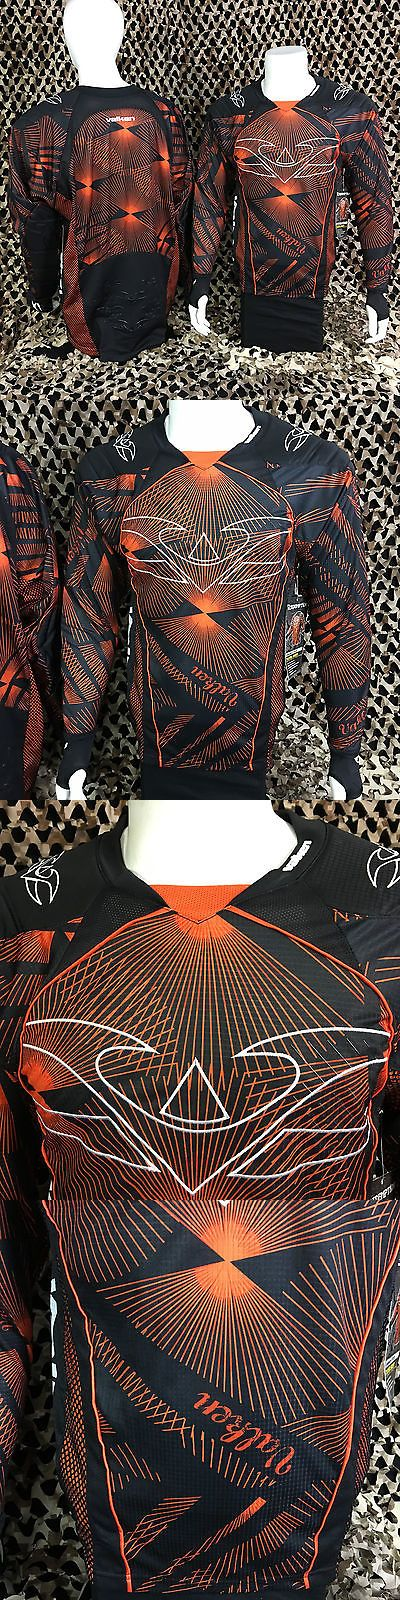 Jerseys and Shirts 165939: New 2013 Valken Redemption Padded Tournament Paintball Jersey - Orange Slash -> BUY IT NOW ONLY: $44.95 on eBay!